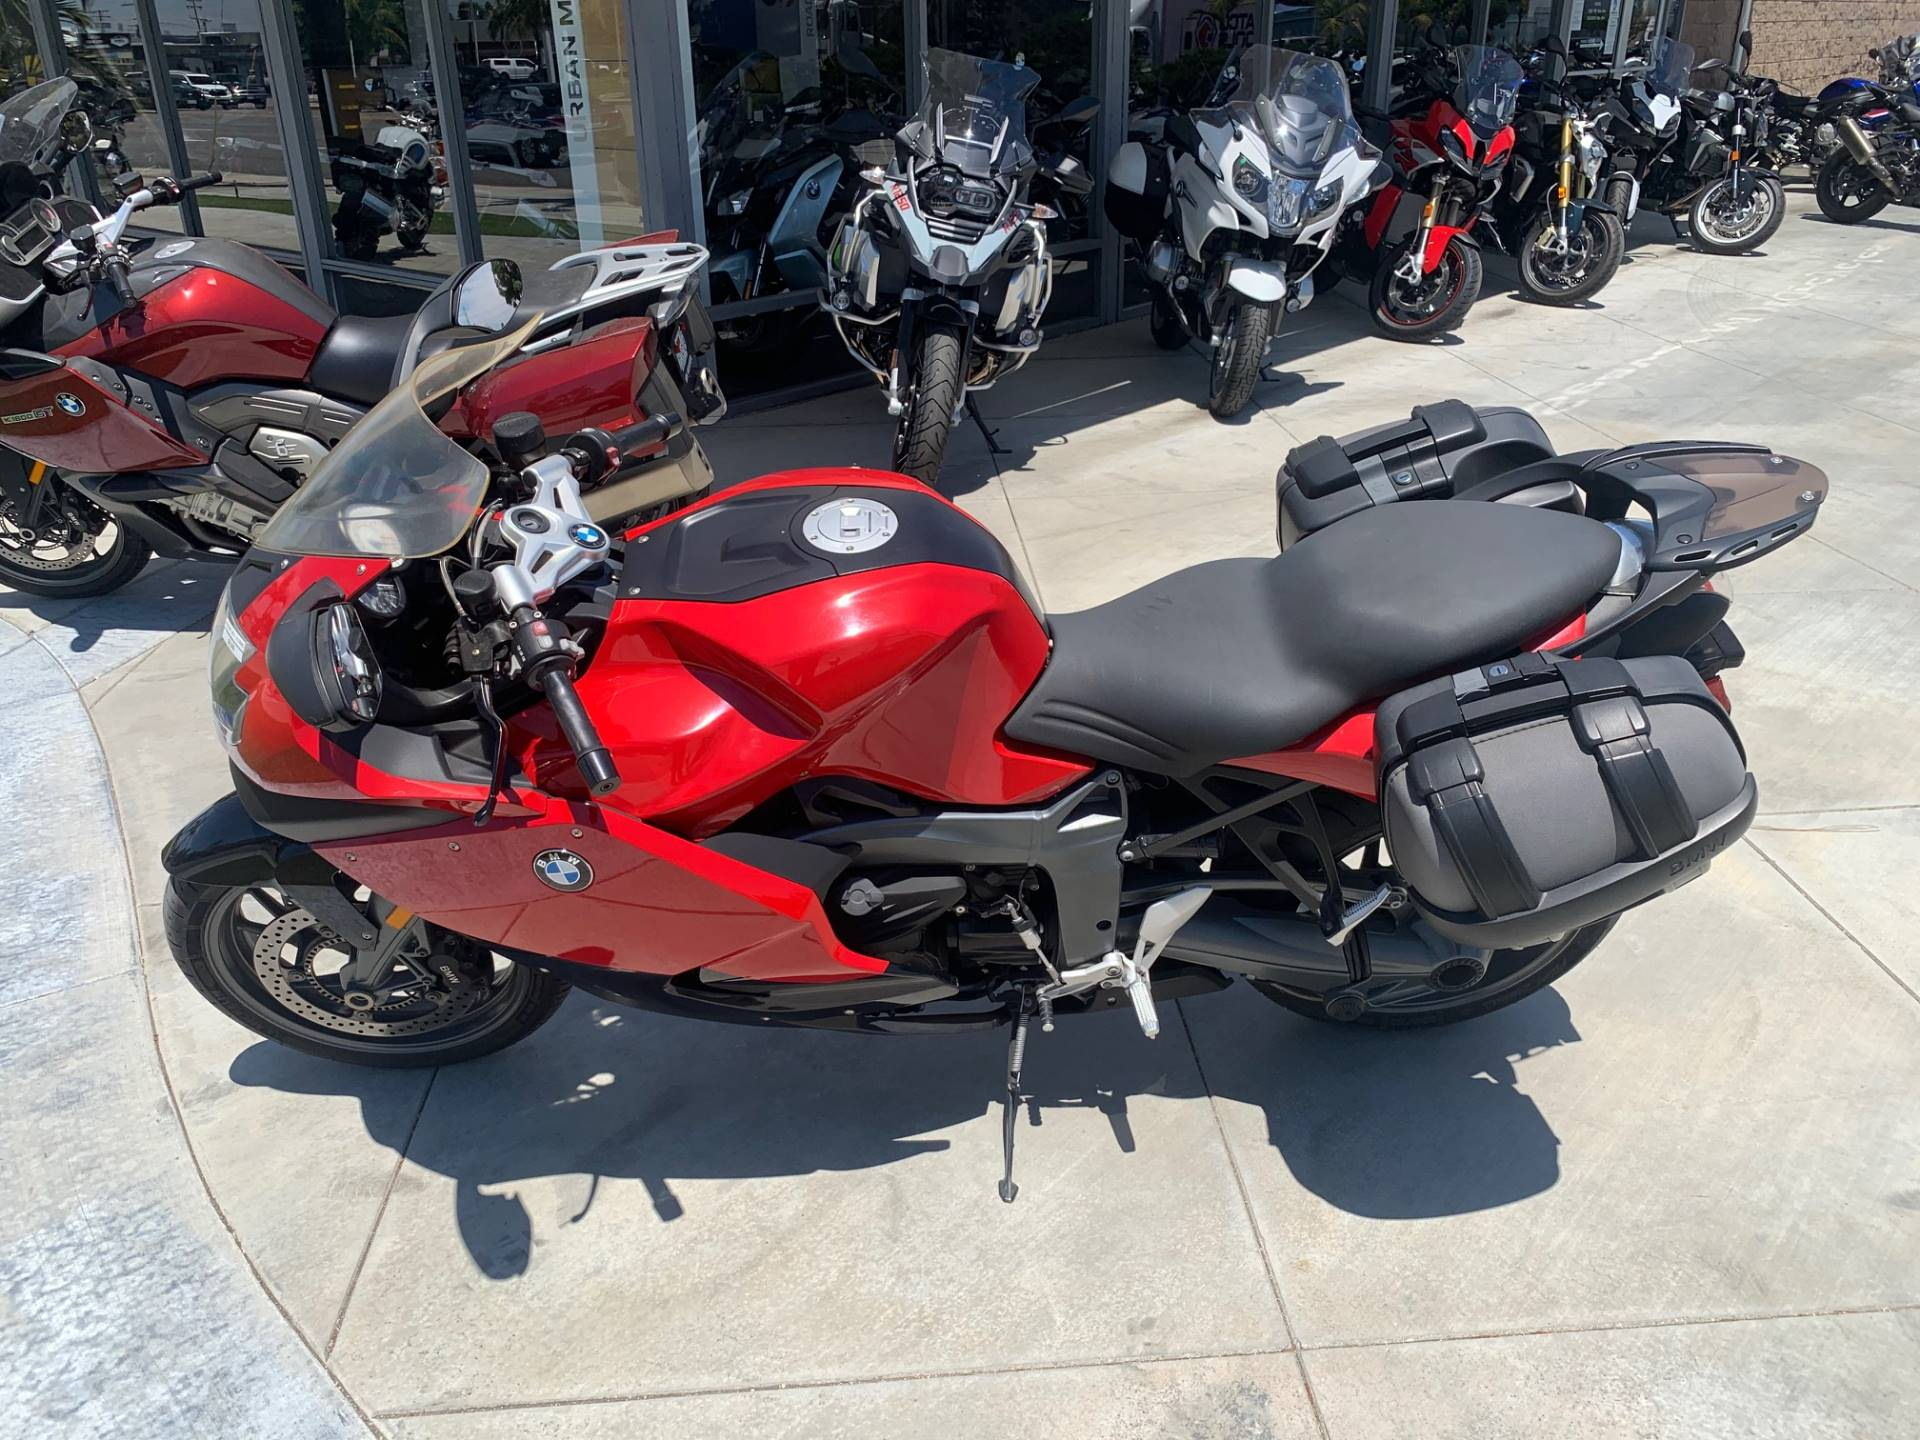 2011 BMW K 1300 S in Orange, California - Photo 1